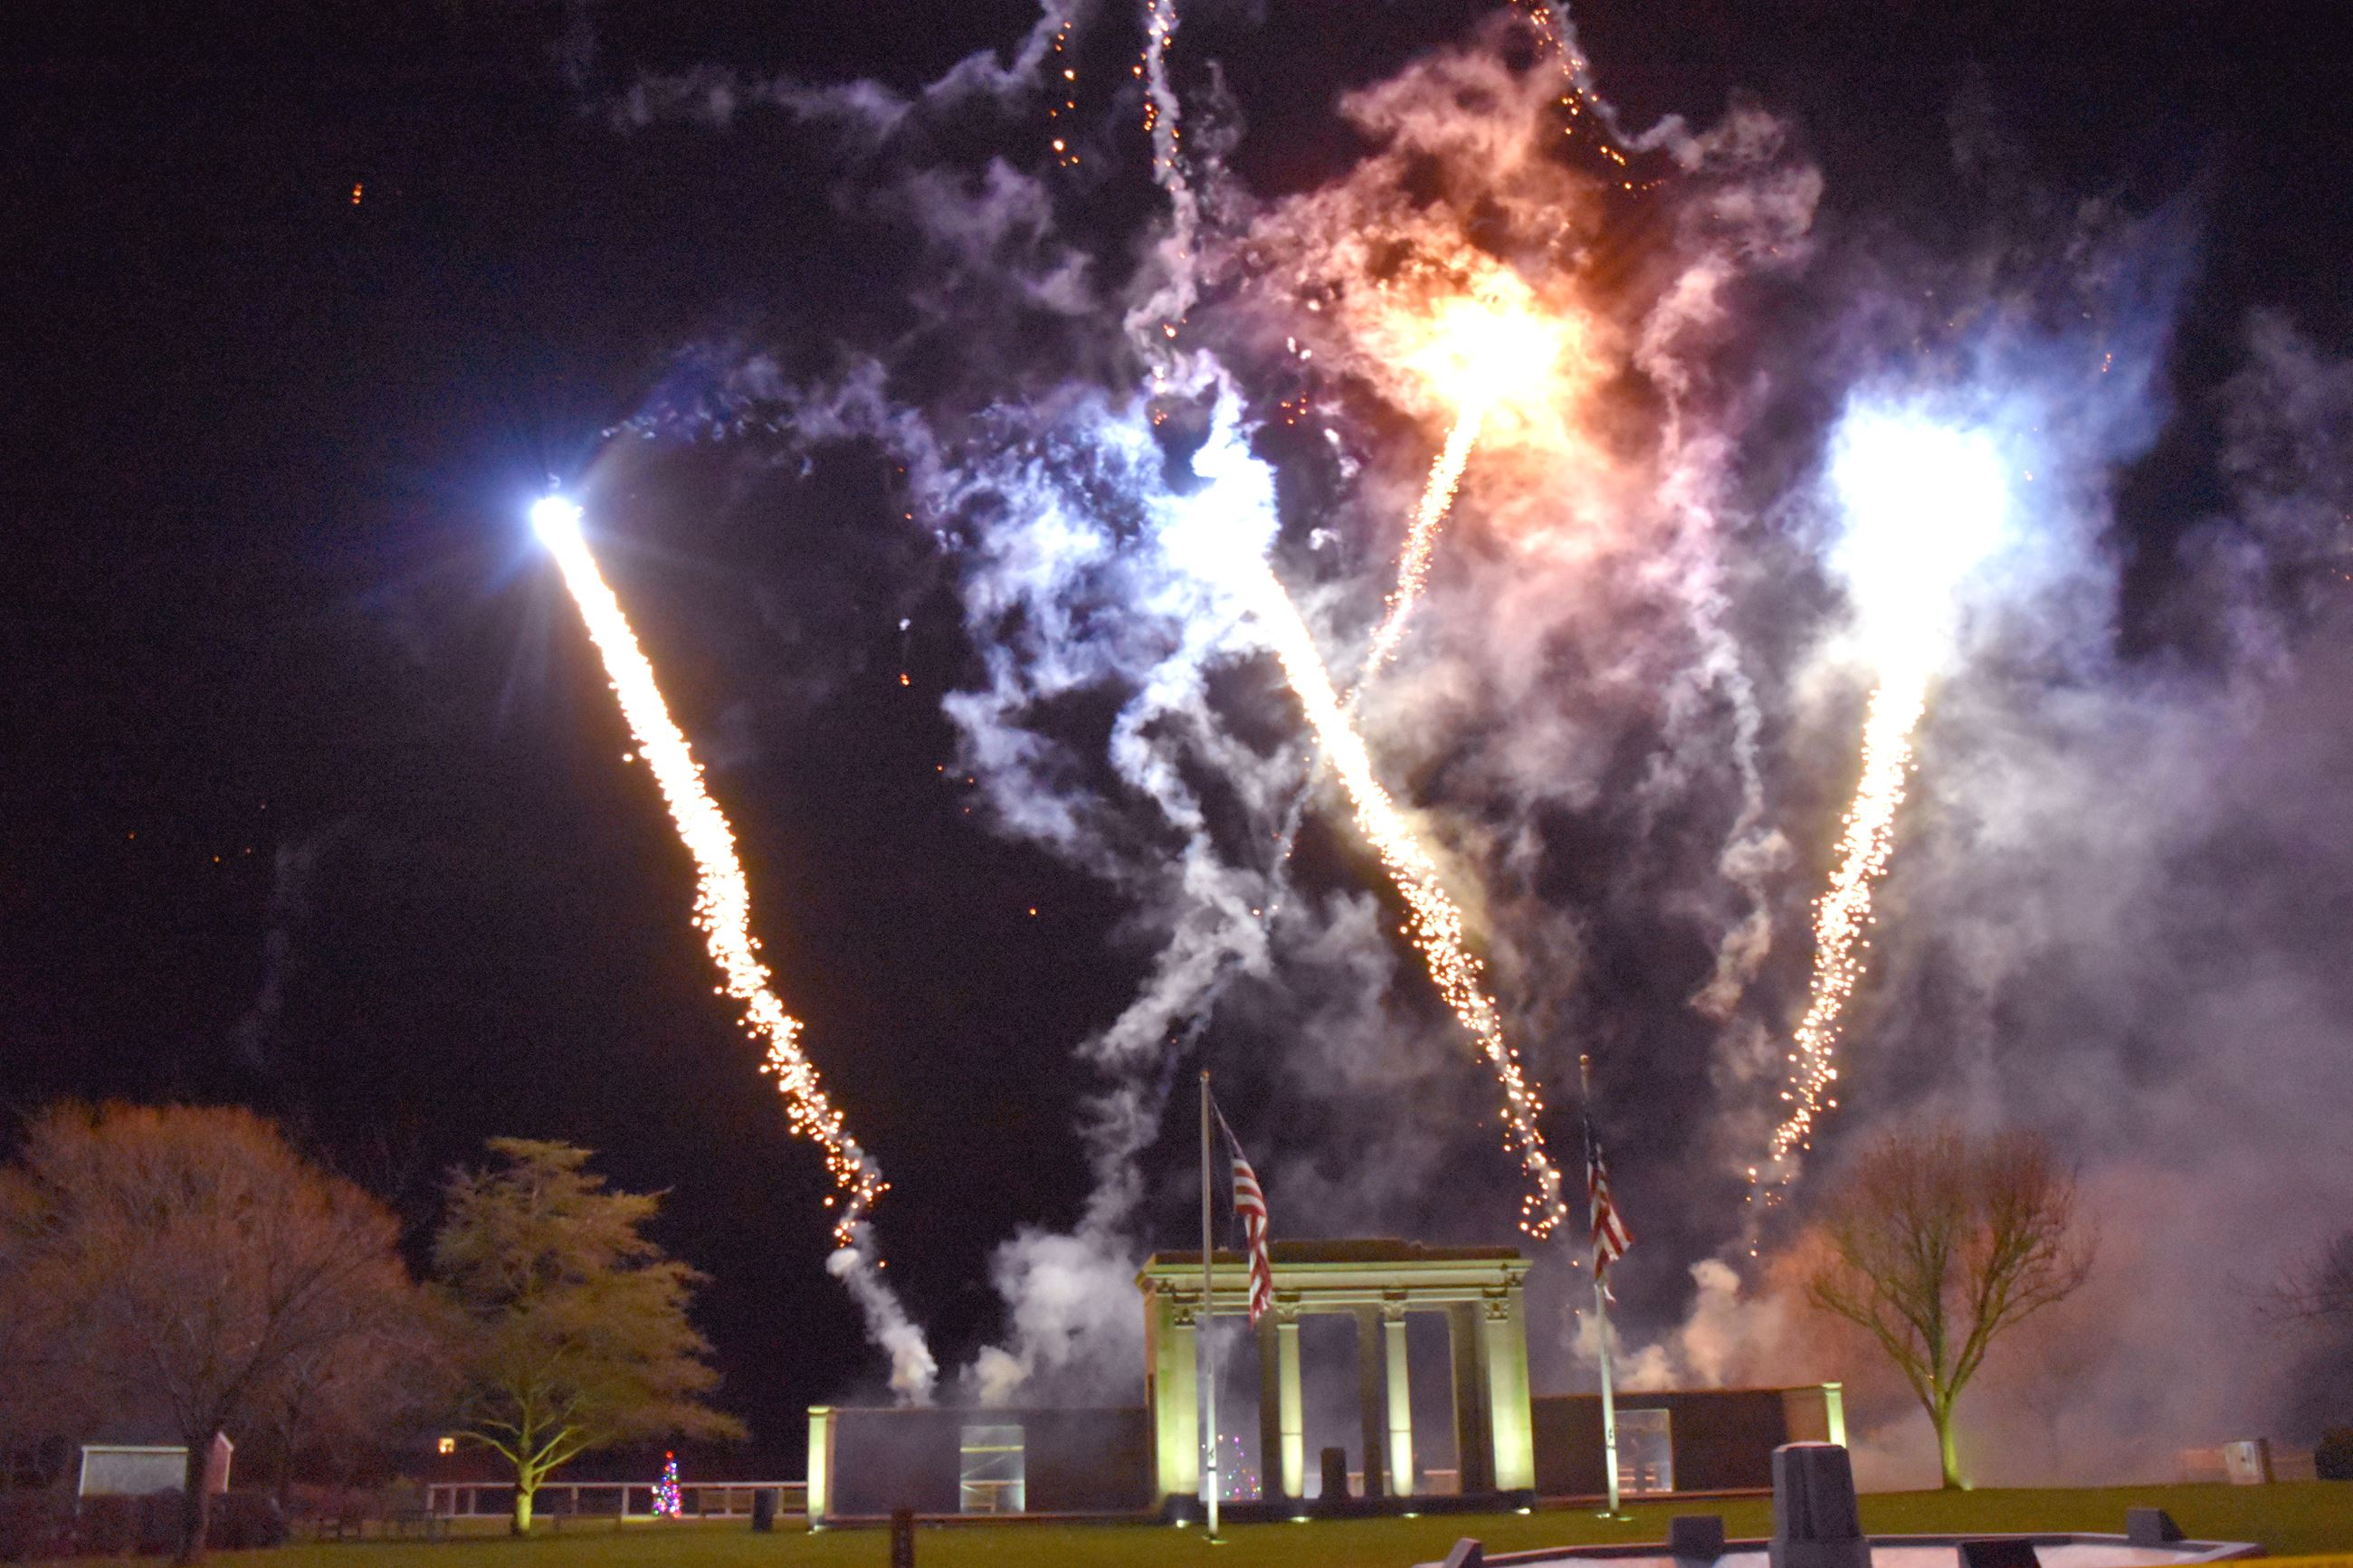 Image of Fireworks display